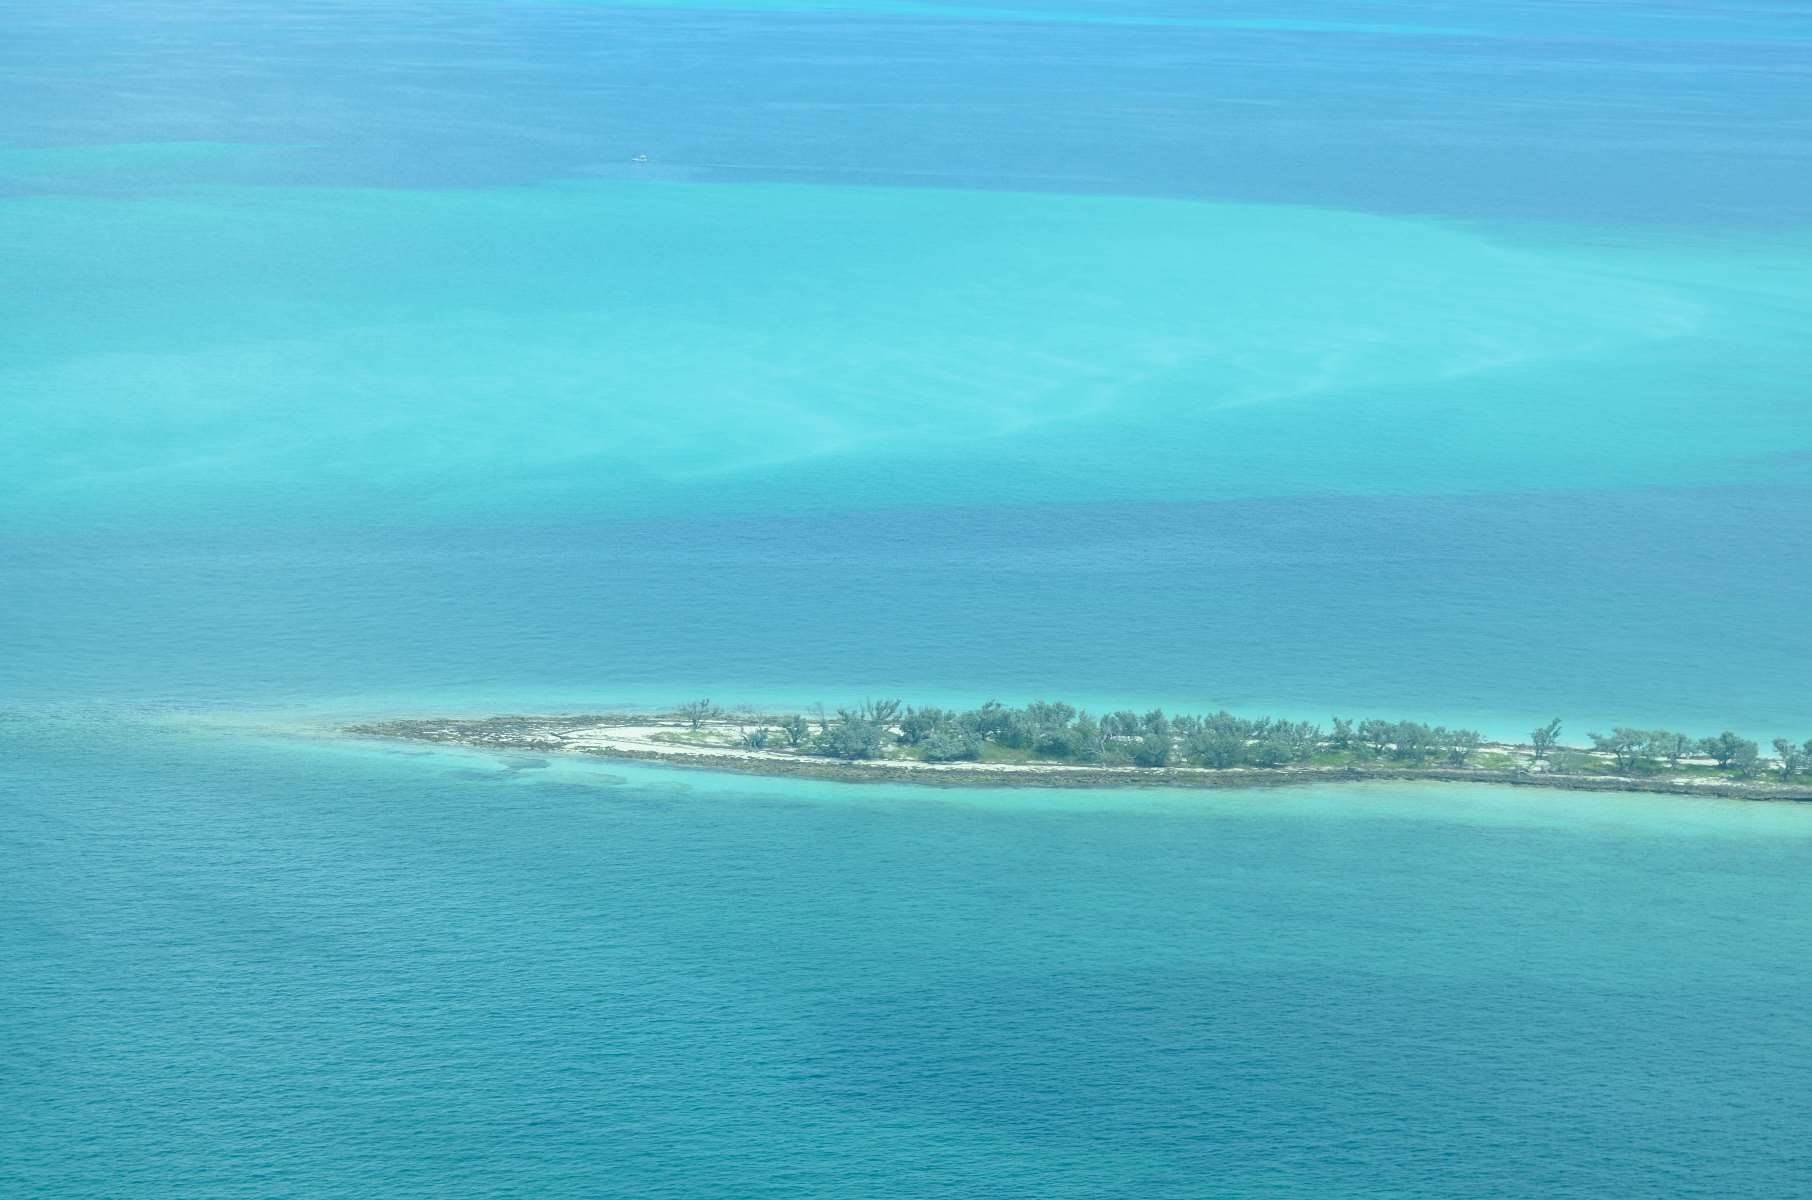 3. Private Islands por un Venta en Large Private Island in Abaco with approved development Plans - MLS 42074 Abaco, Bahamas